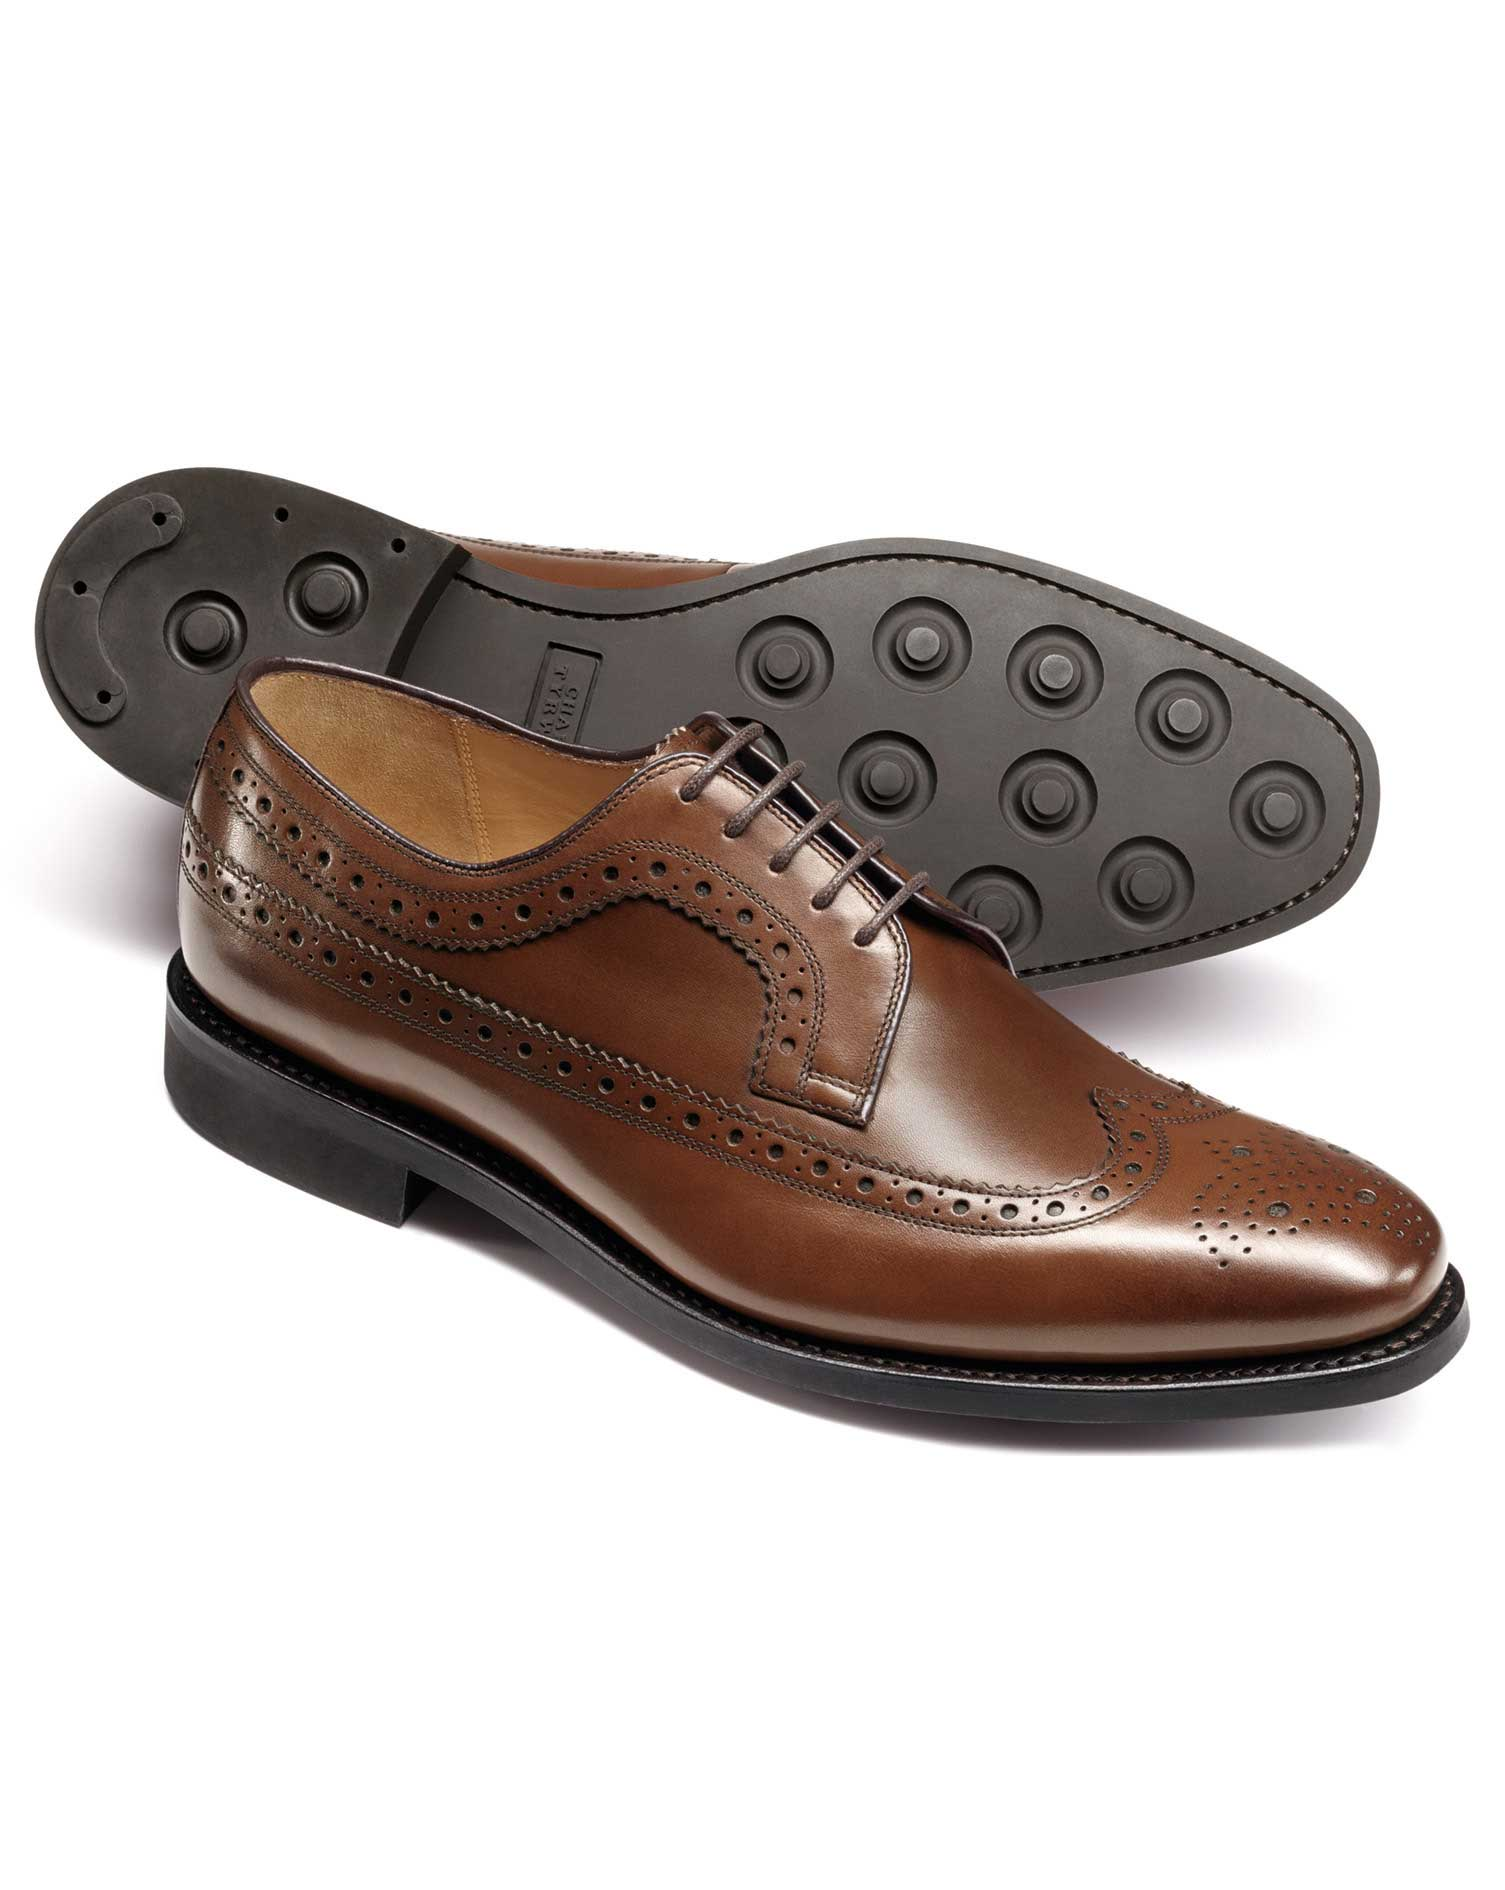 Chestnut Goodyear Welted Derby Wing Tip Brogue Shoes Size 9 R by Charles Tyrwhitt